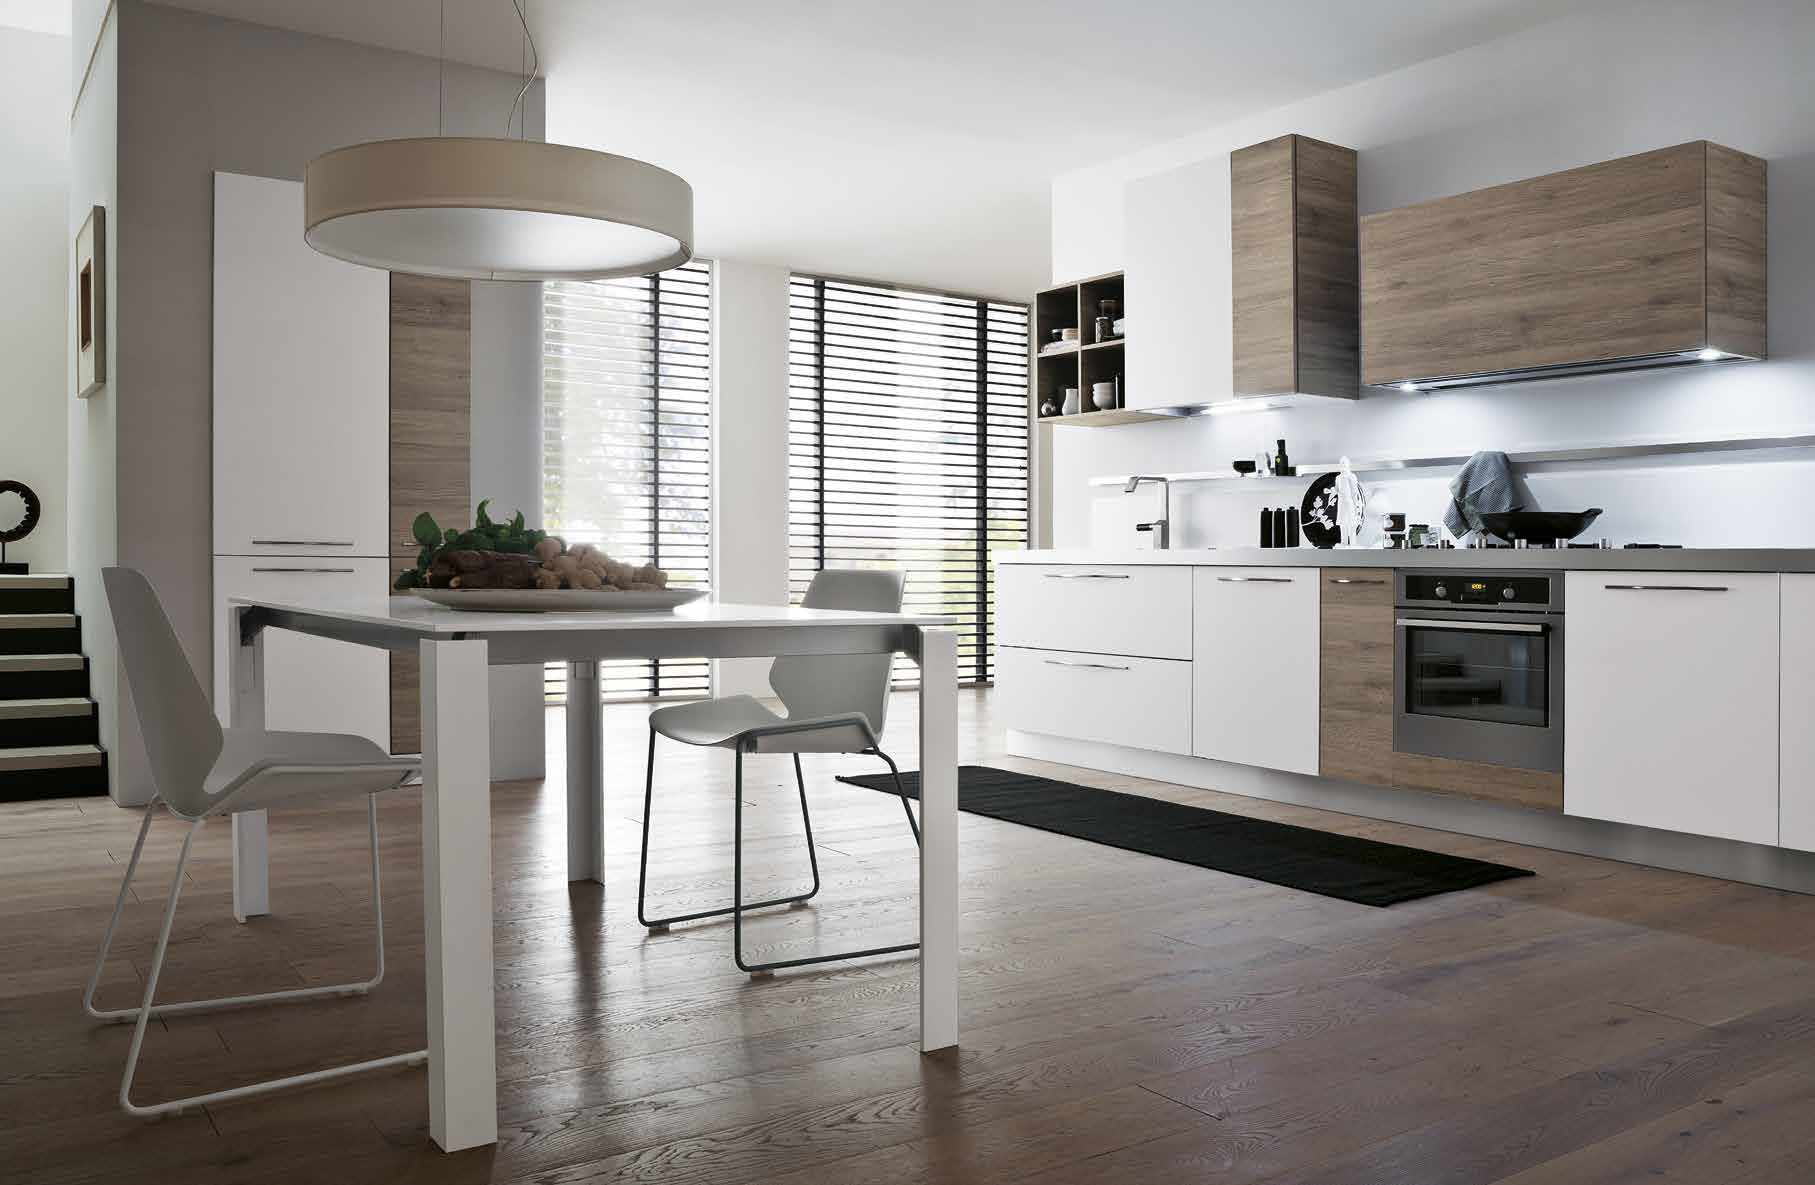 Outlet cucine veneto amazing outlet cucine brescia for Outlet cucine brescia